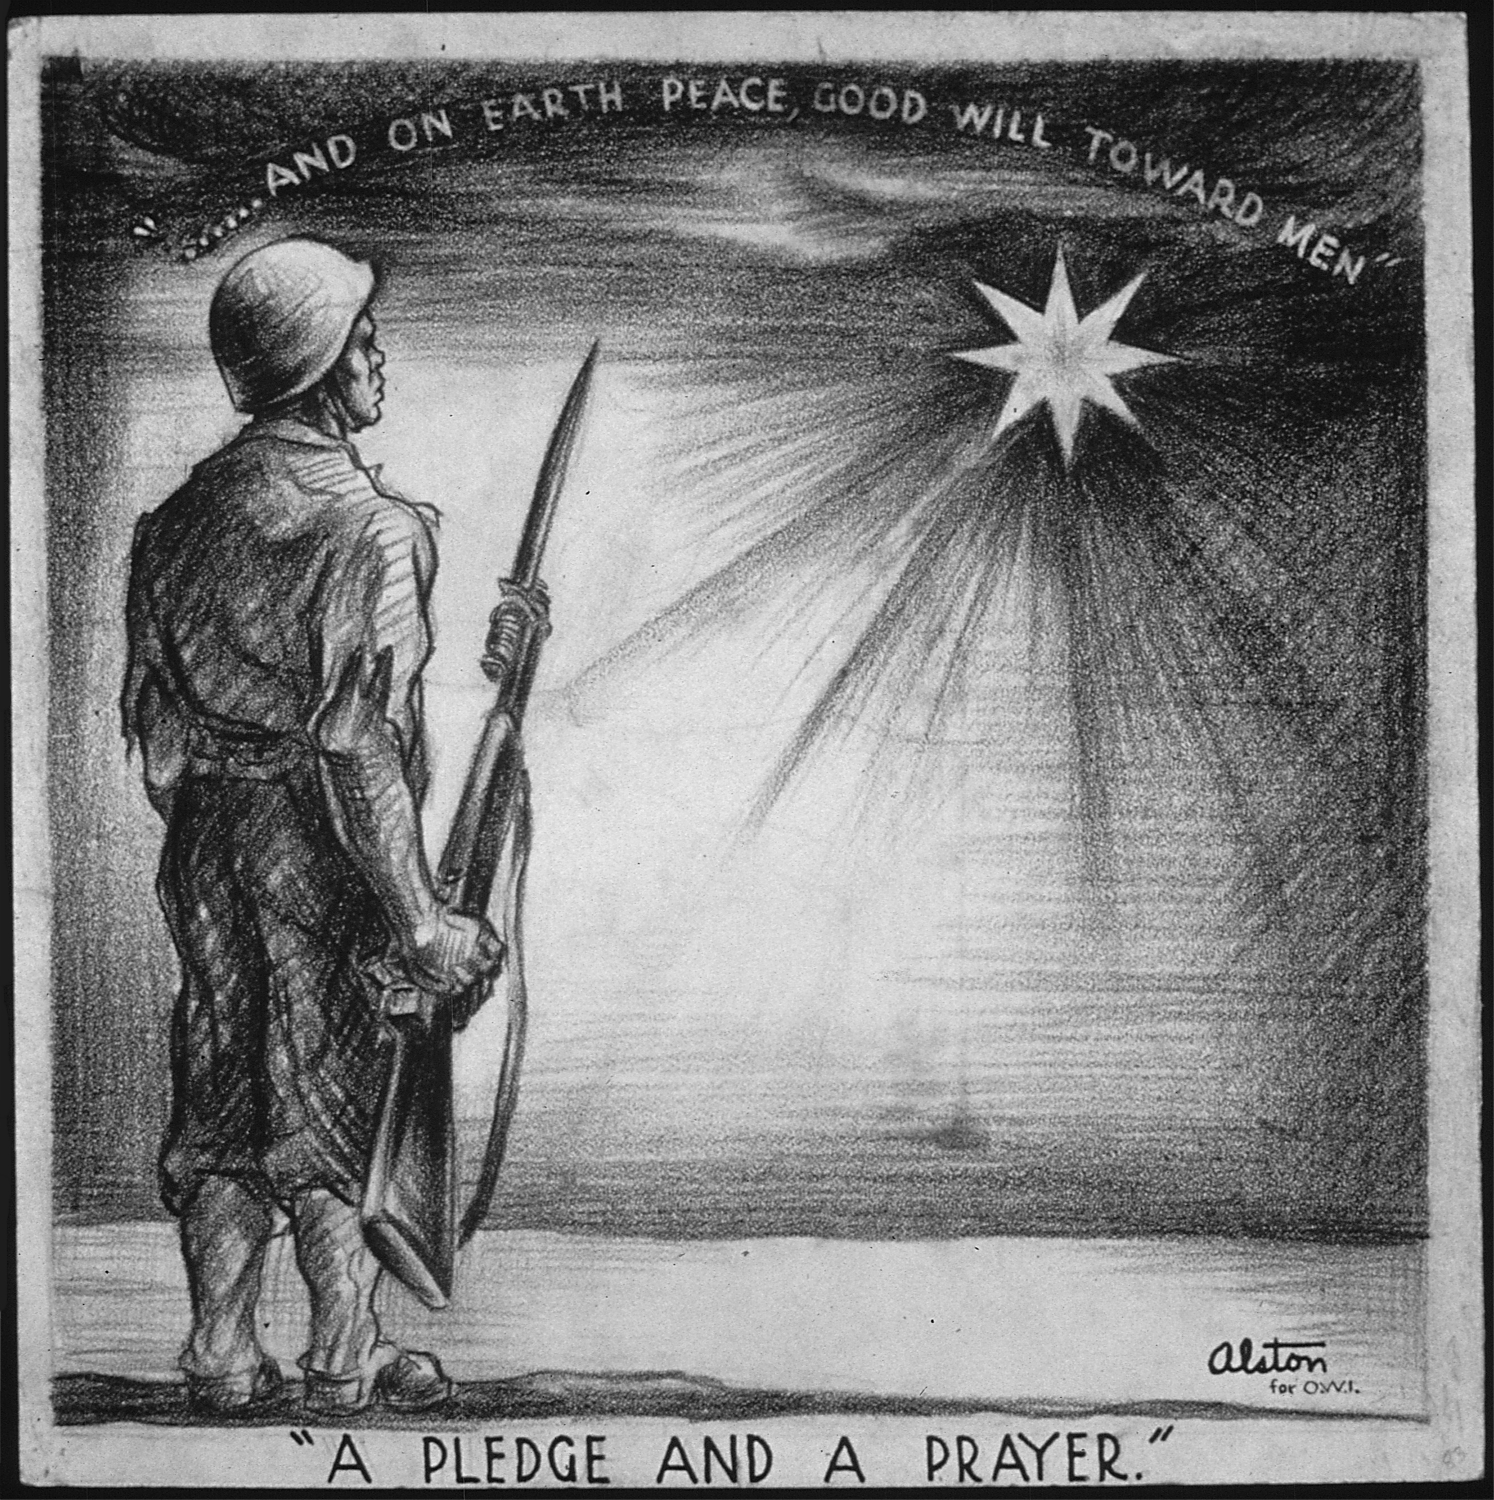 Peace on earth good will to people\